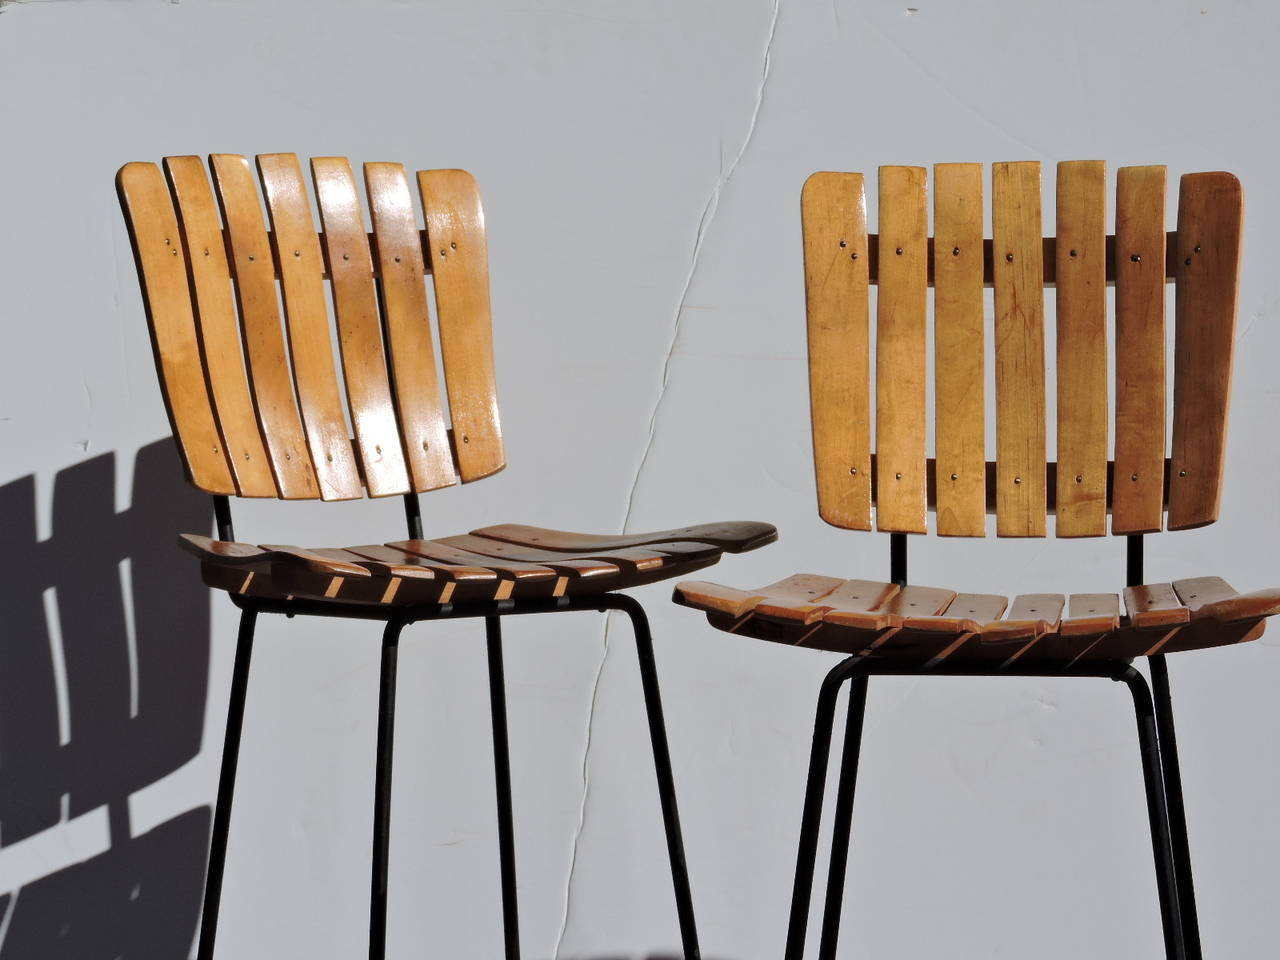 Bar Stools Image Galery Bar Stools With Tractor Seats